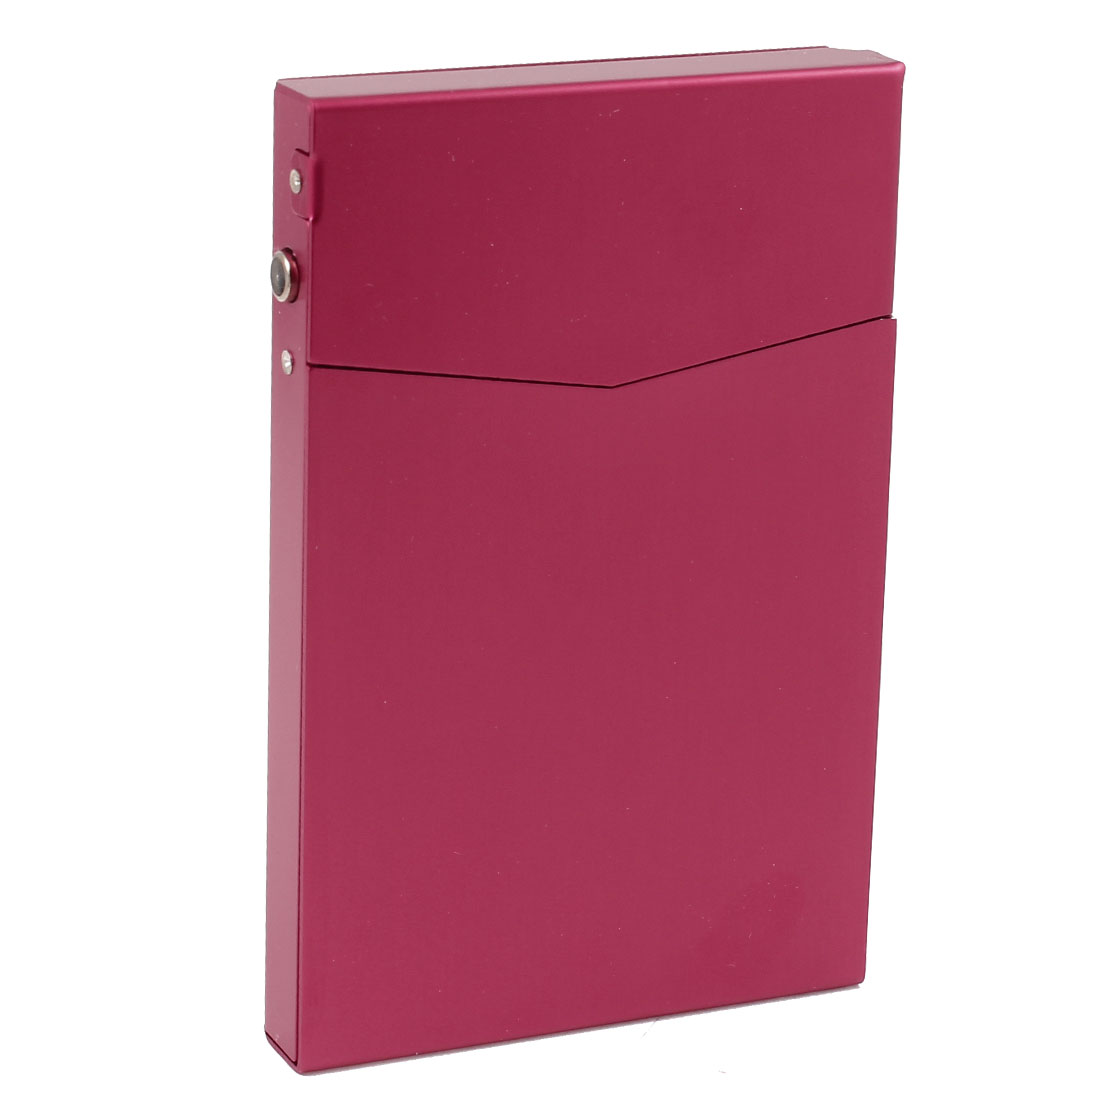 Magnetic Closure Fuchsia Aluminum 90mmx60mmx10mm Hold 7 Pcs Cigarette Case Box Holder